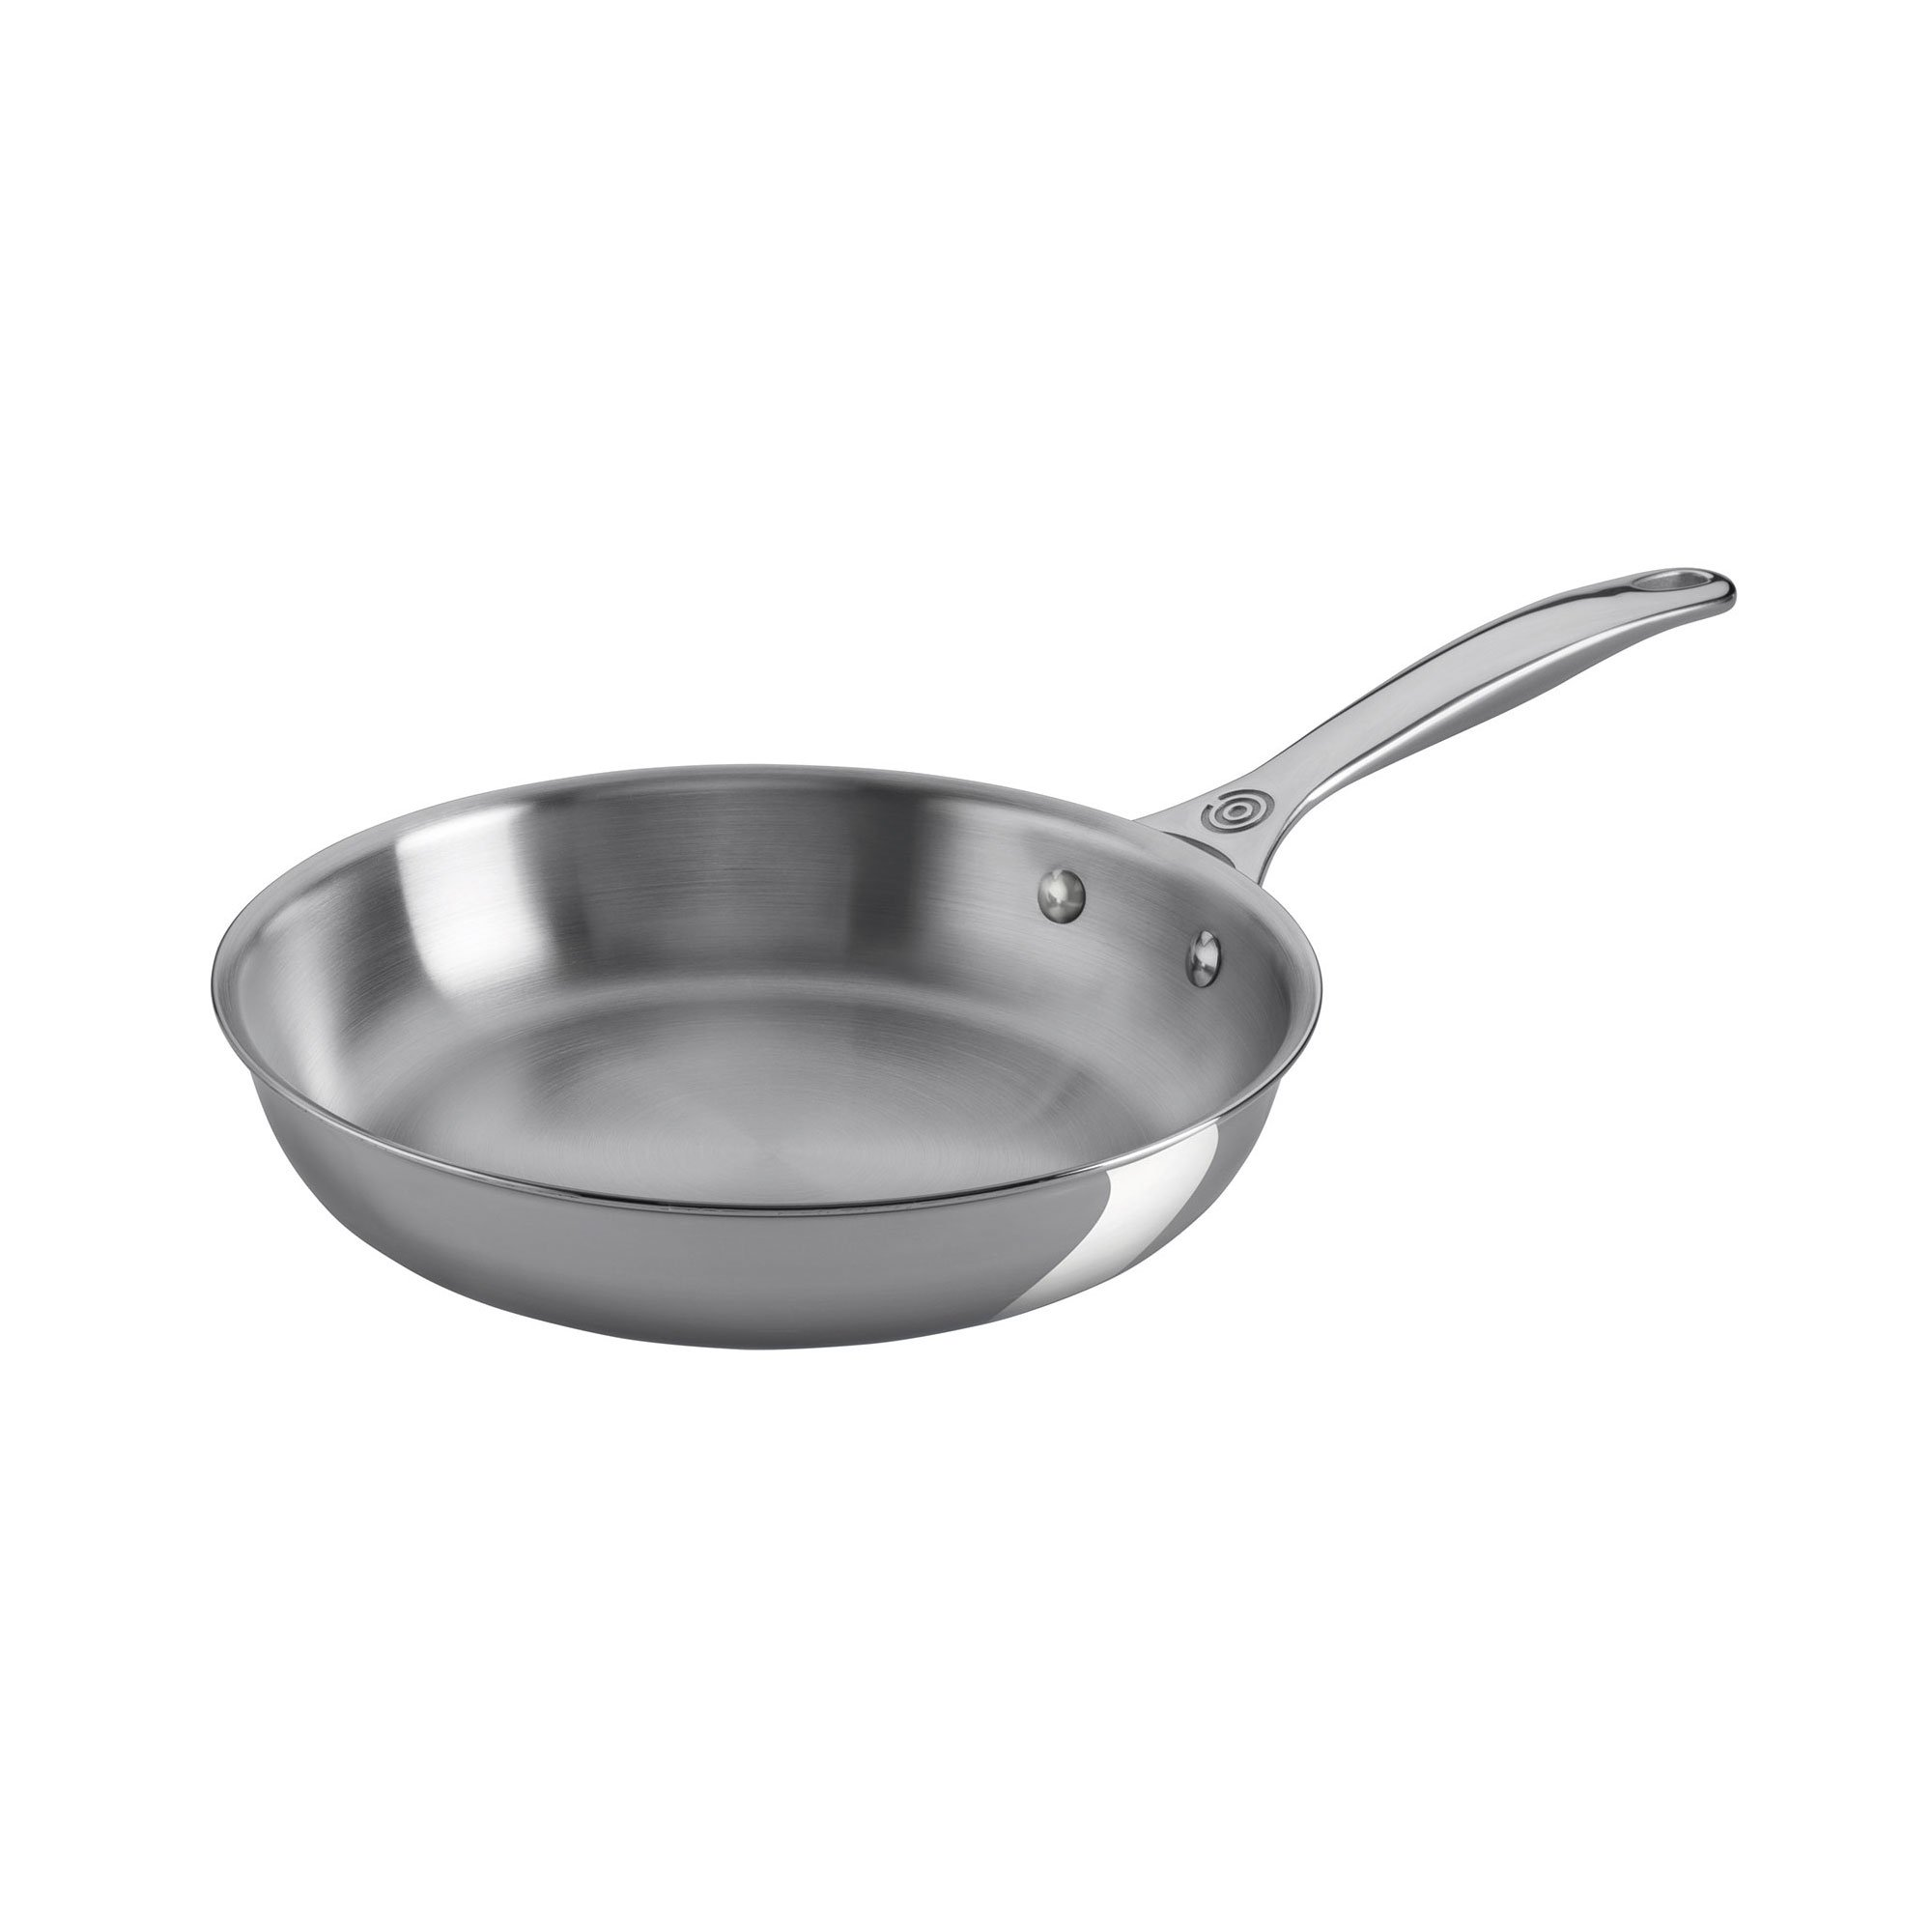 Le Creuset of America Stainless Steel Deep Fry Pan with Helper Handle, 12.5''